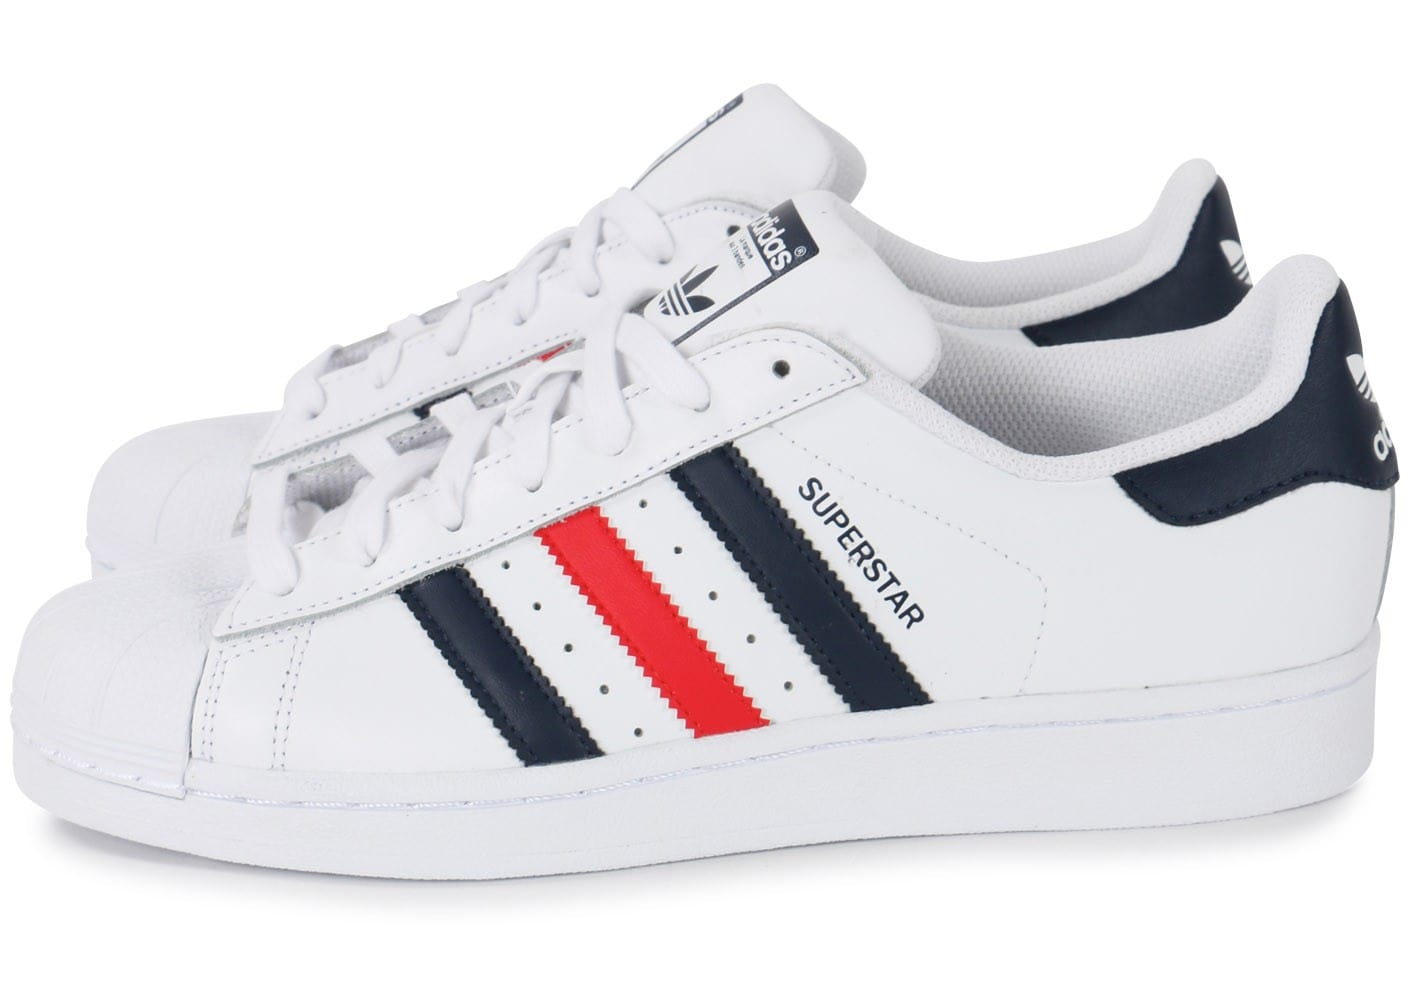 adidas Superstar Foundation bleu blanc rouge - Chaussures ...